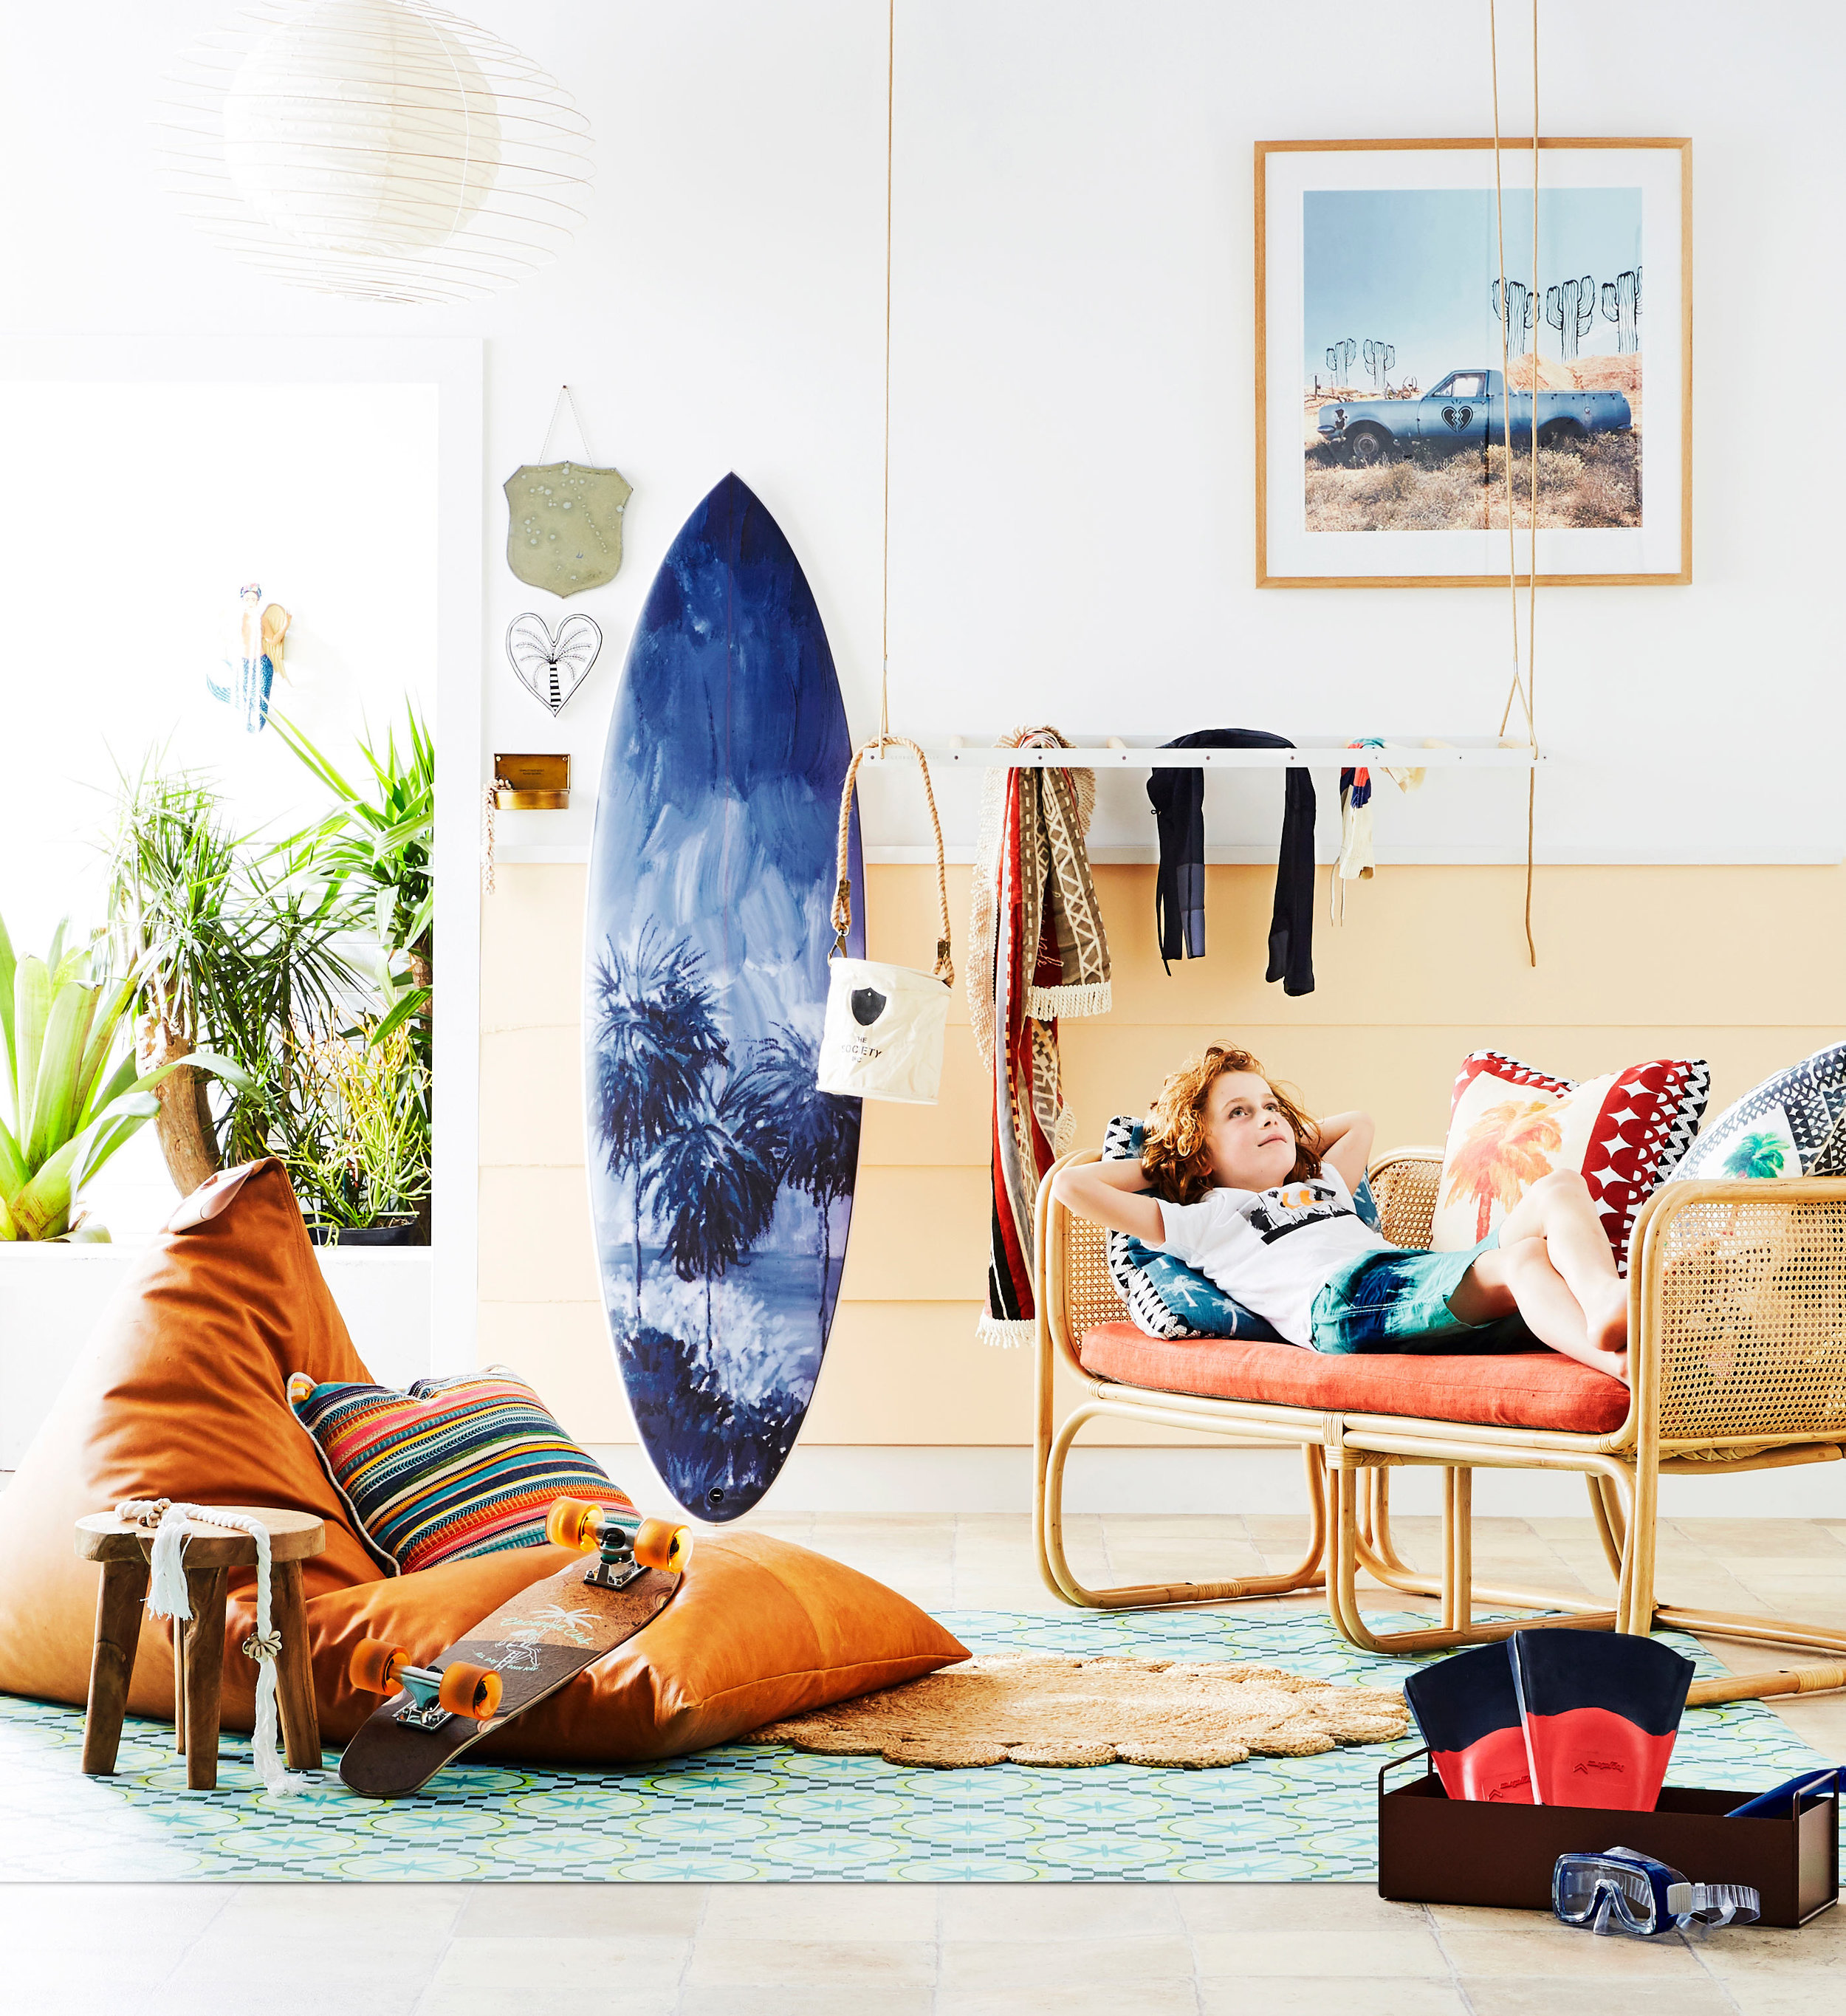 'Surfer's Den' photography by Nic Gossage